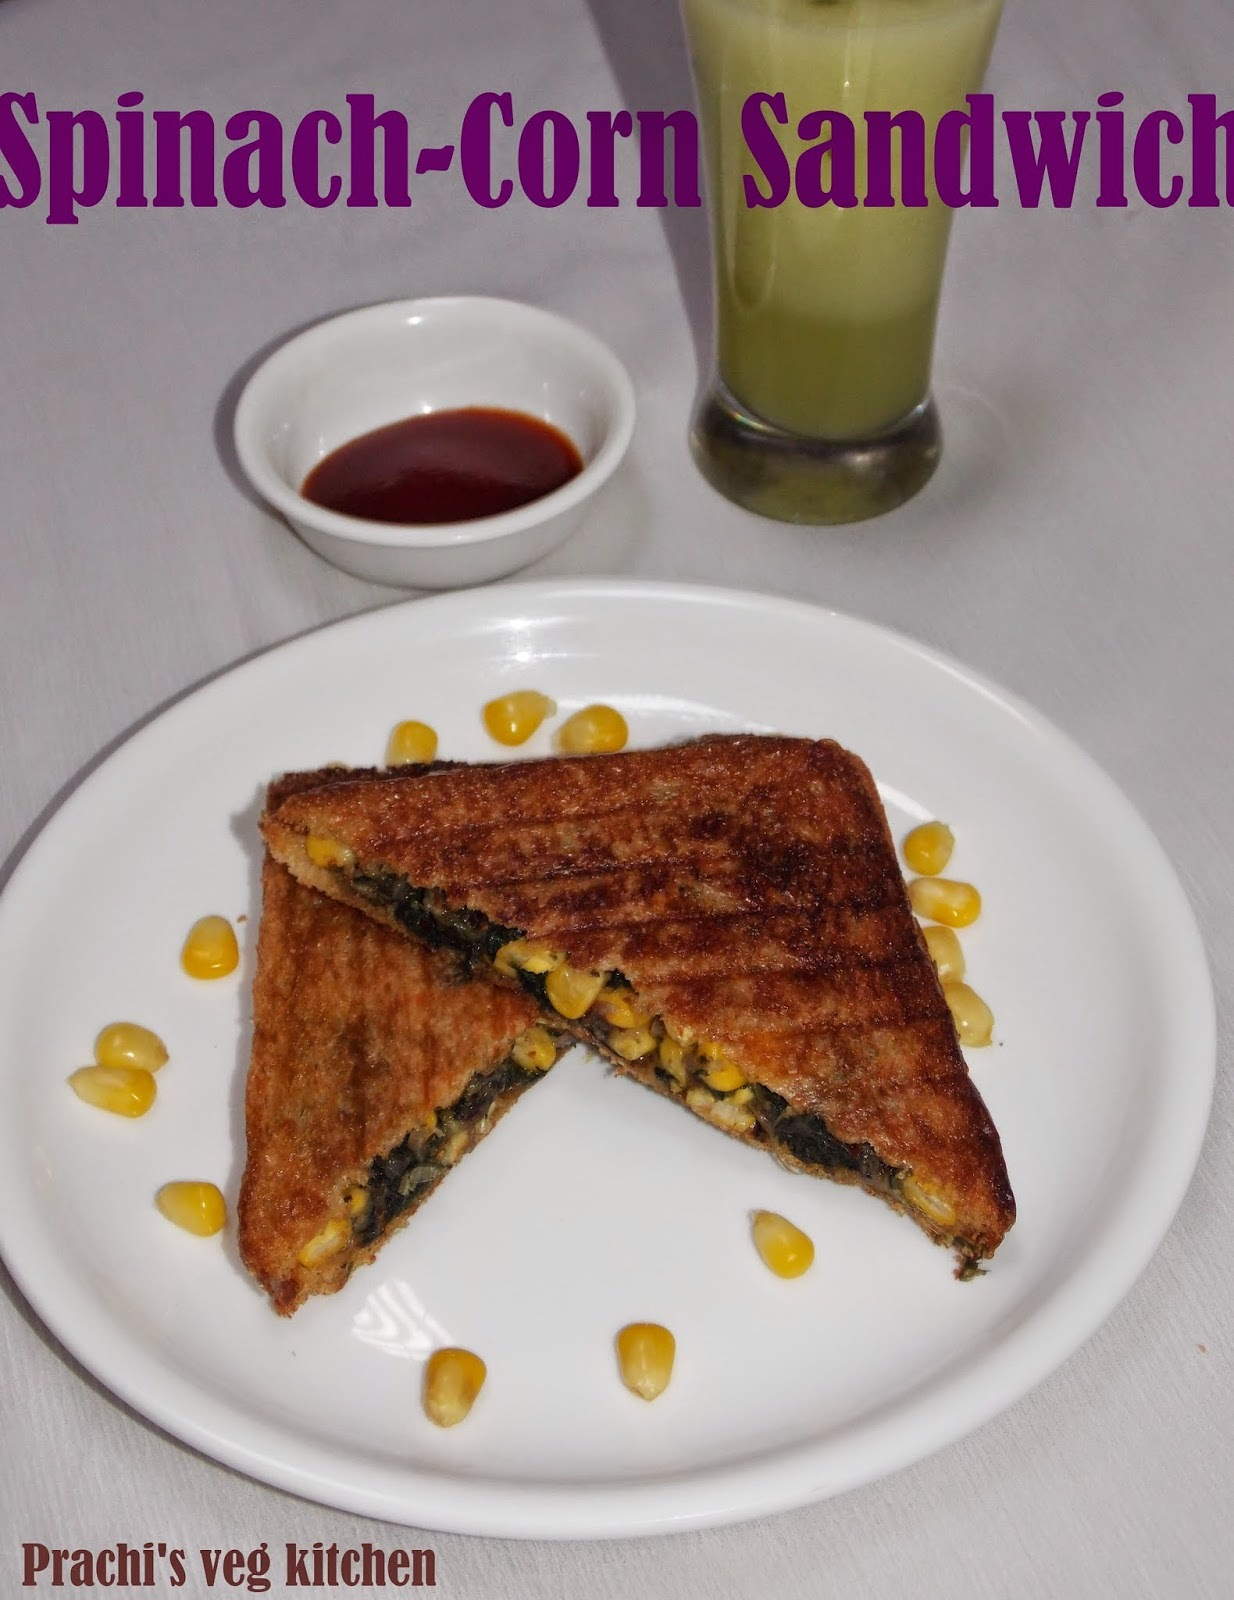 Spinach -Corn Sandwich